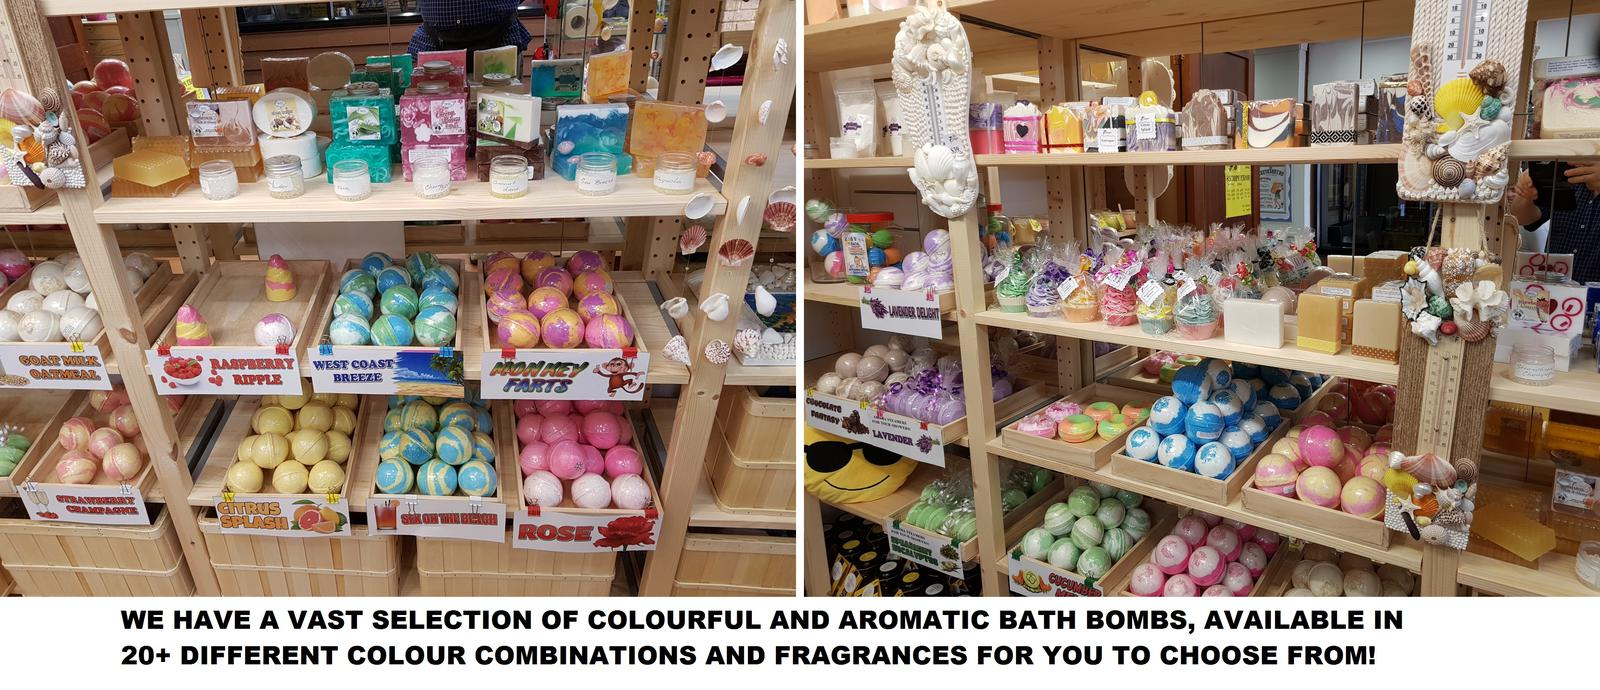 OUR LARGE BATH BOMB SELECTION